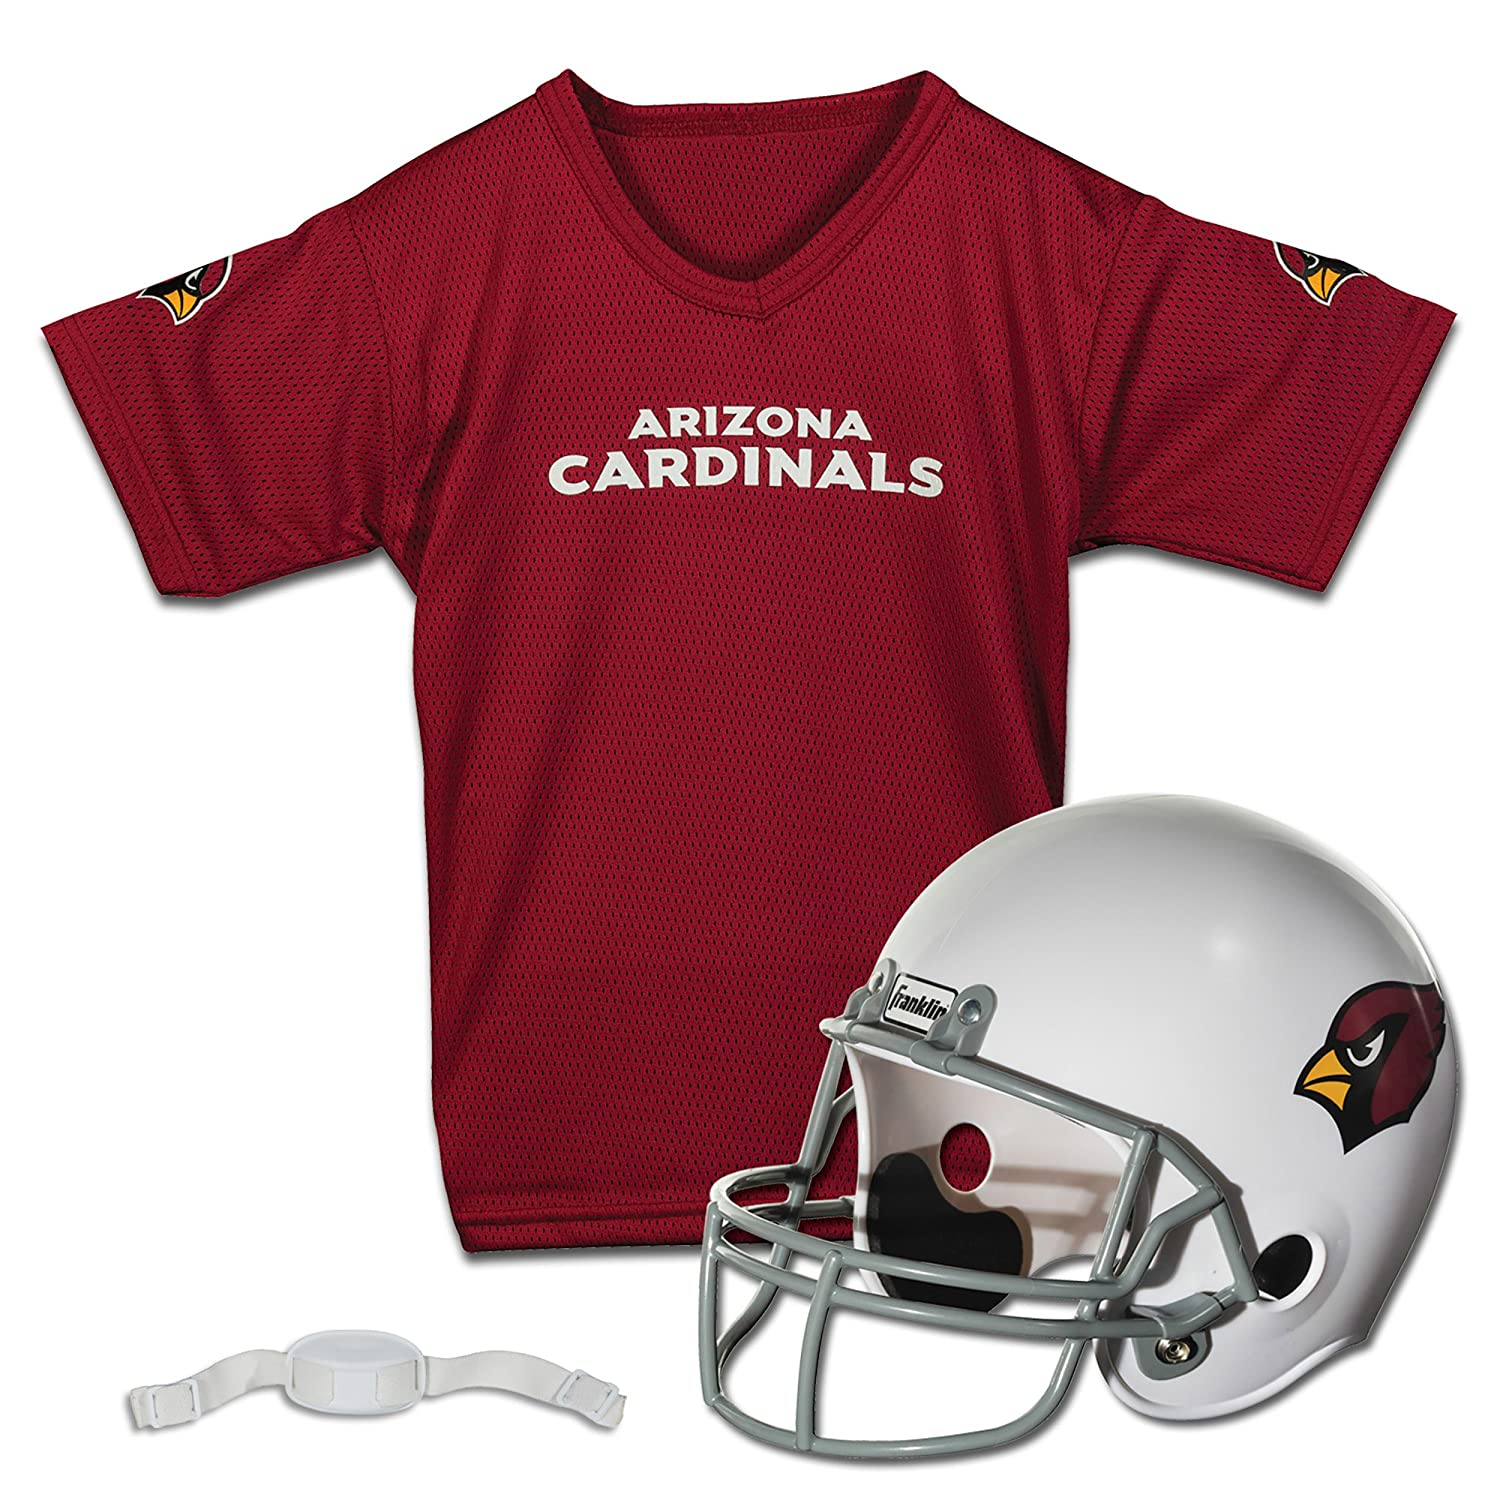 354996af6 Amazon.com   Franklin Sports NFL Arizona Cardinals Replica Youth Helmet and Jersey  Set   Sports Fan Jerseys   Clothing